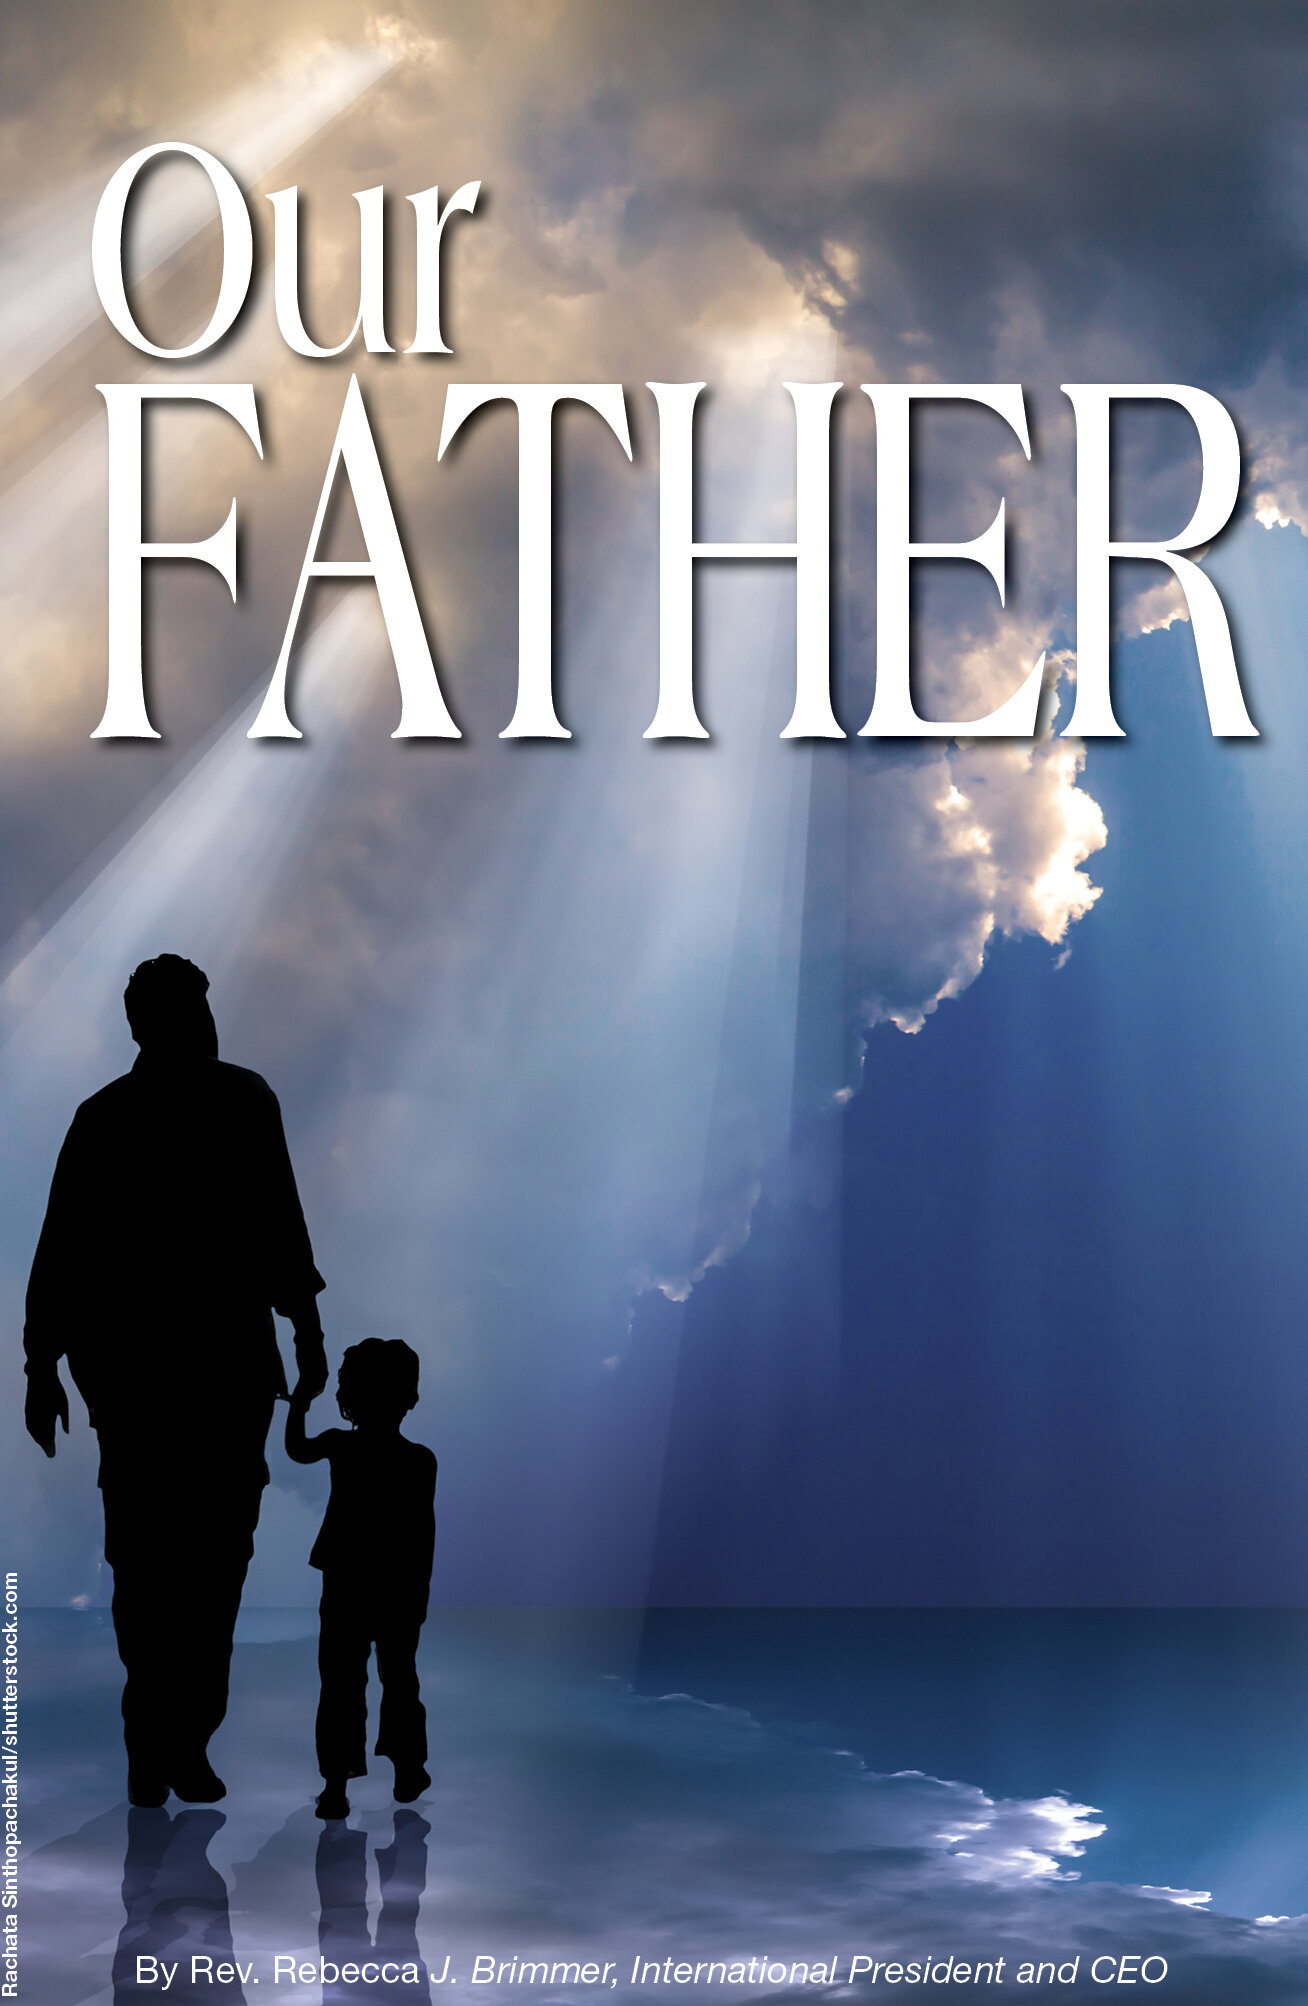 """Repeatedly Jesus/Yeshua used the term """"Father"""" to refer to God Almighty. According to Eric von Atzigen, """"Jesus traveled and taught for three years. There are about 110 pages in the Bible dedicated to His ministry and message. We have approximately 25,000 words that Jesus spoke recorded in the Bible. Of those 25,000 words, Jesus taught about the Father in Heaven at least 181 times. This means 1 out of every 140 words, Jesus was speaking about His Father. His central message and purpose was to restore us to a relationship with our Daddy in Heaven."""""""